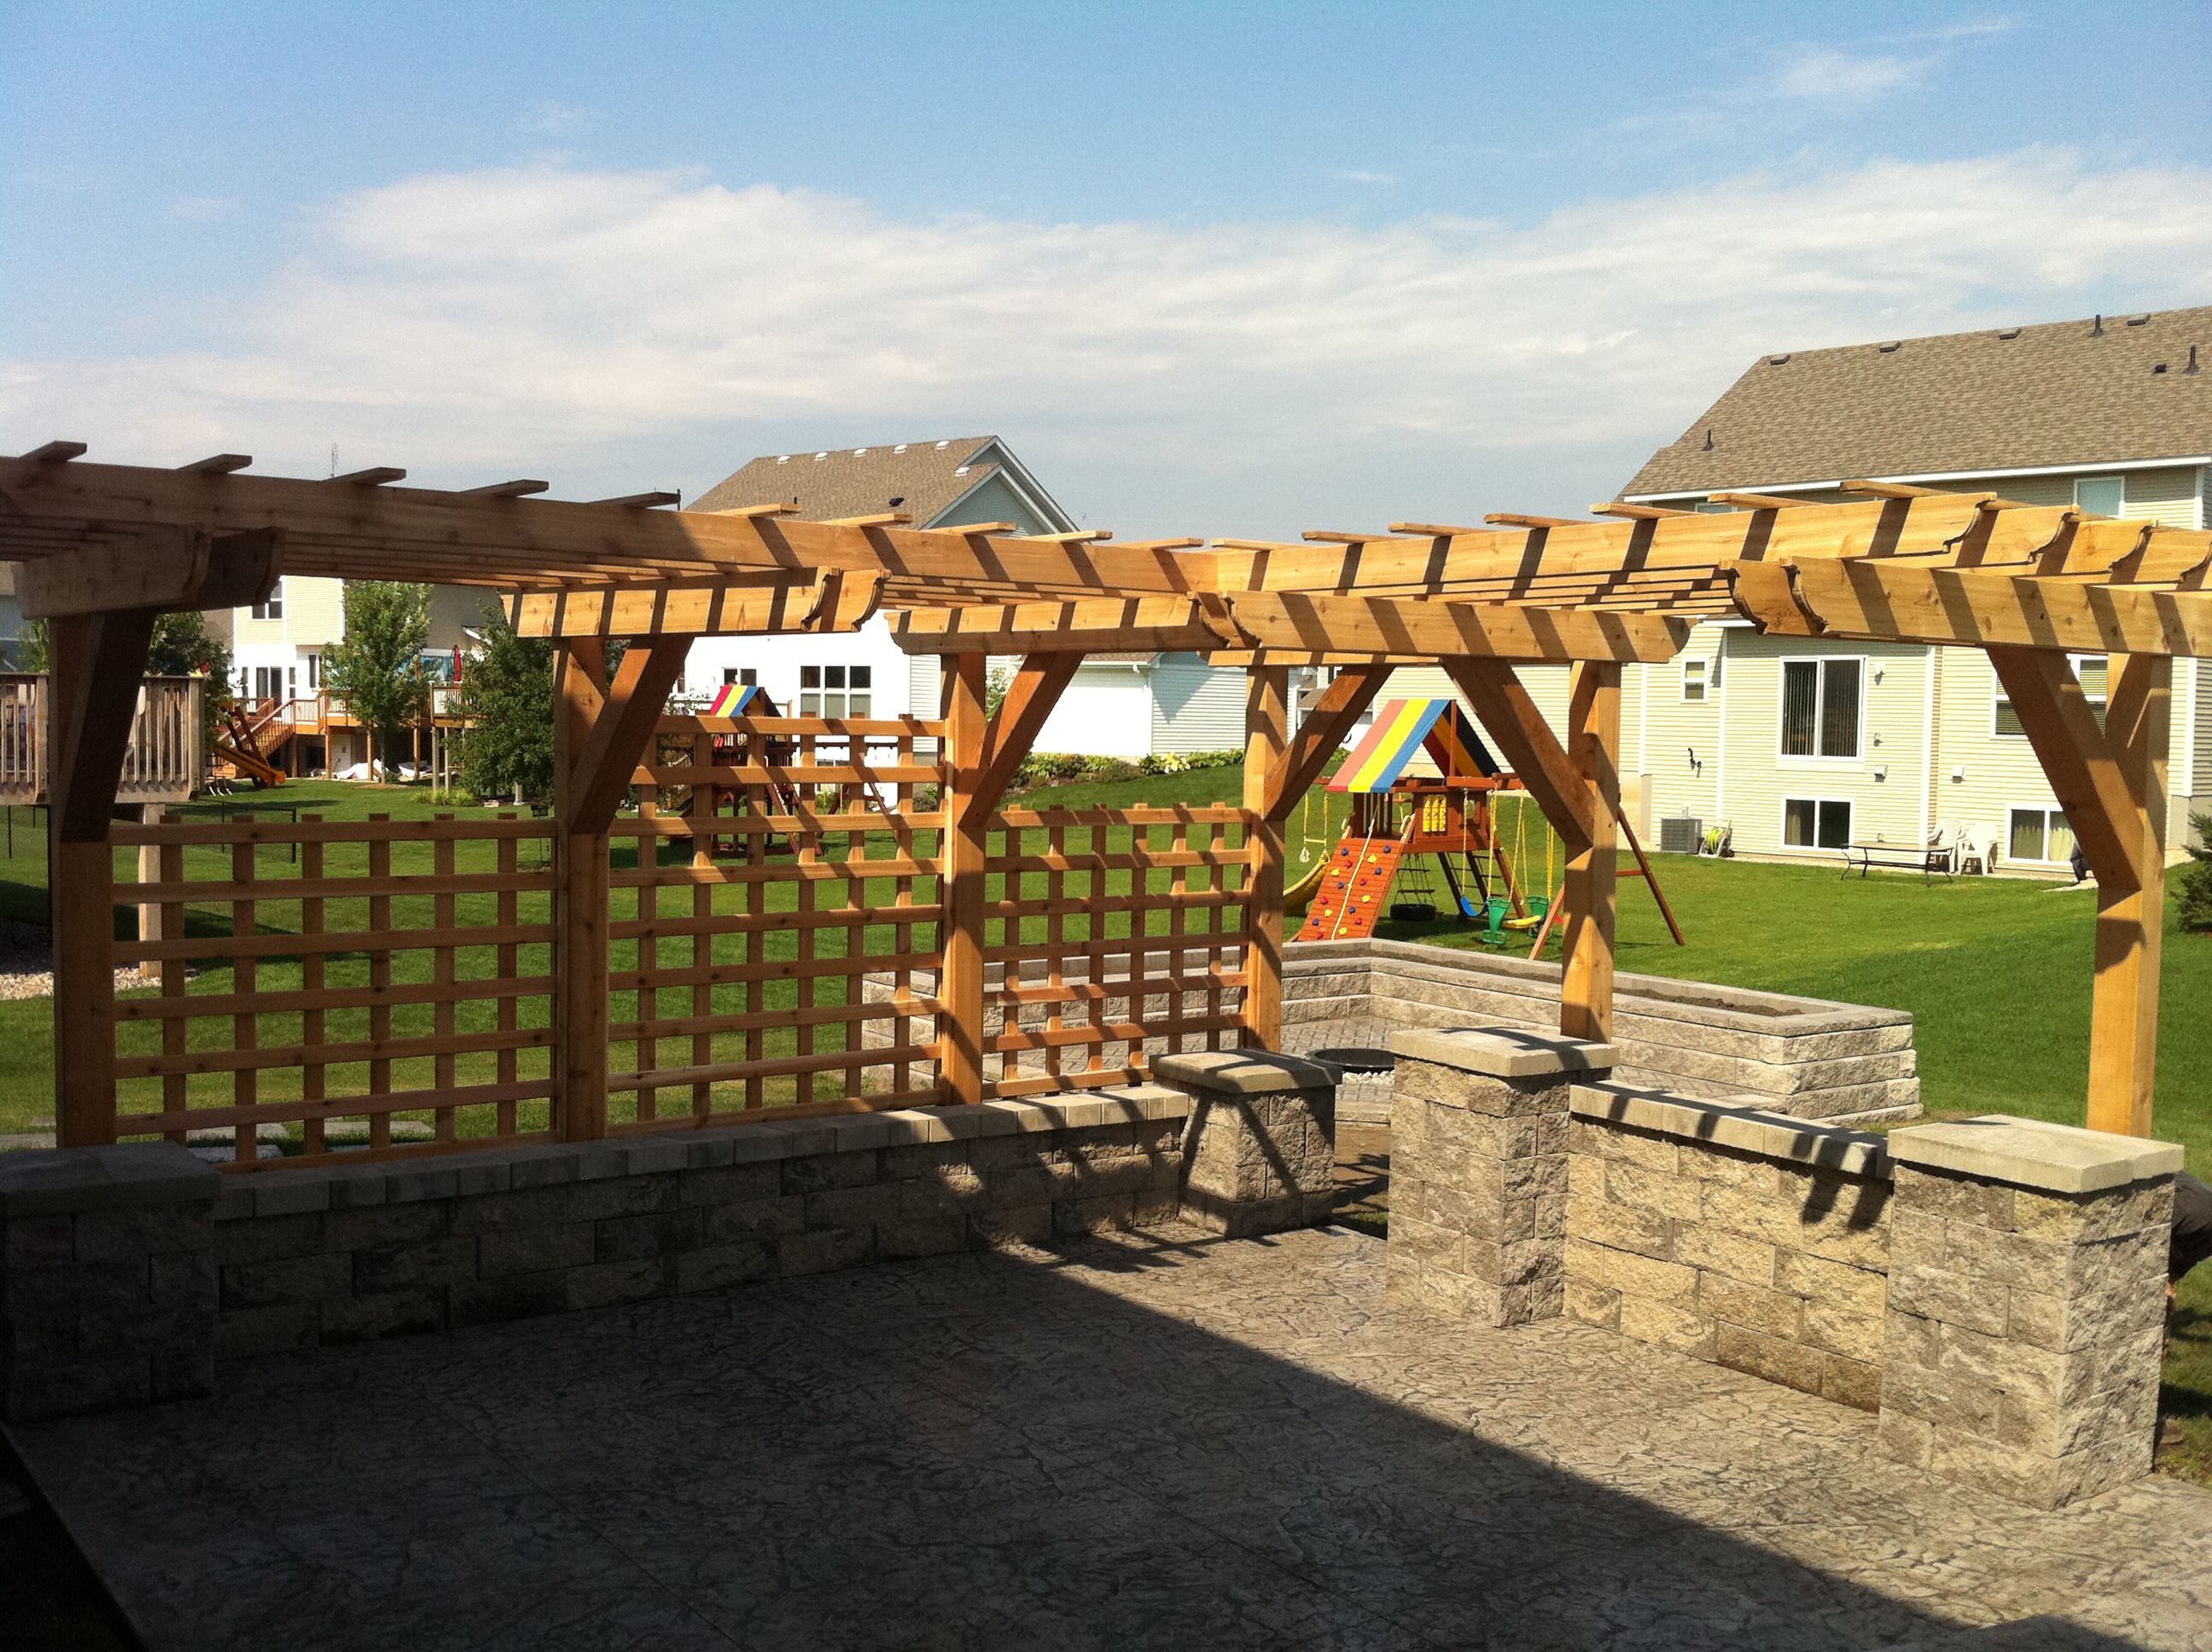 Patio privacy wall ideas - Stamped Concrete Patio With Seating Walls Cantilever Pergola And Custom Lattice For Privacy Great